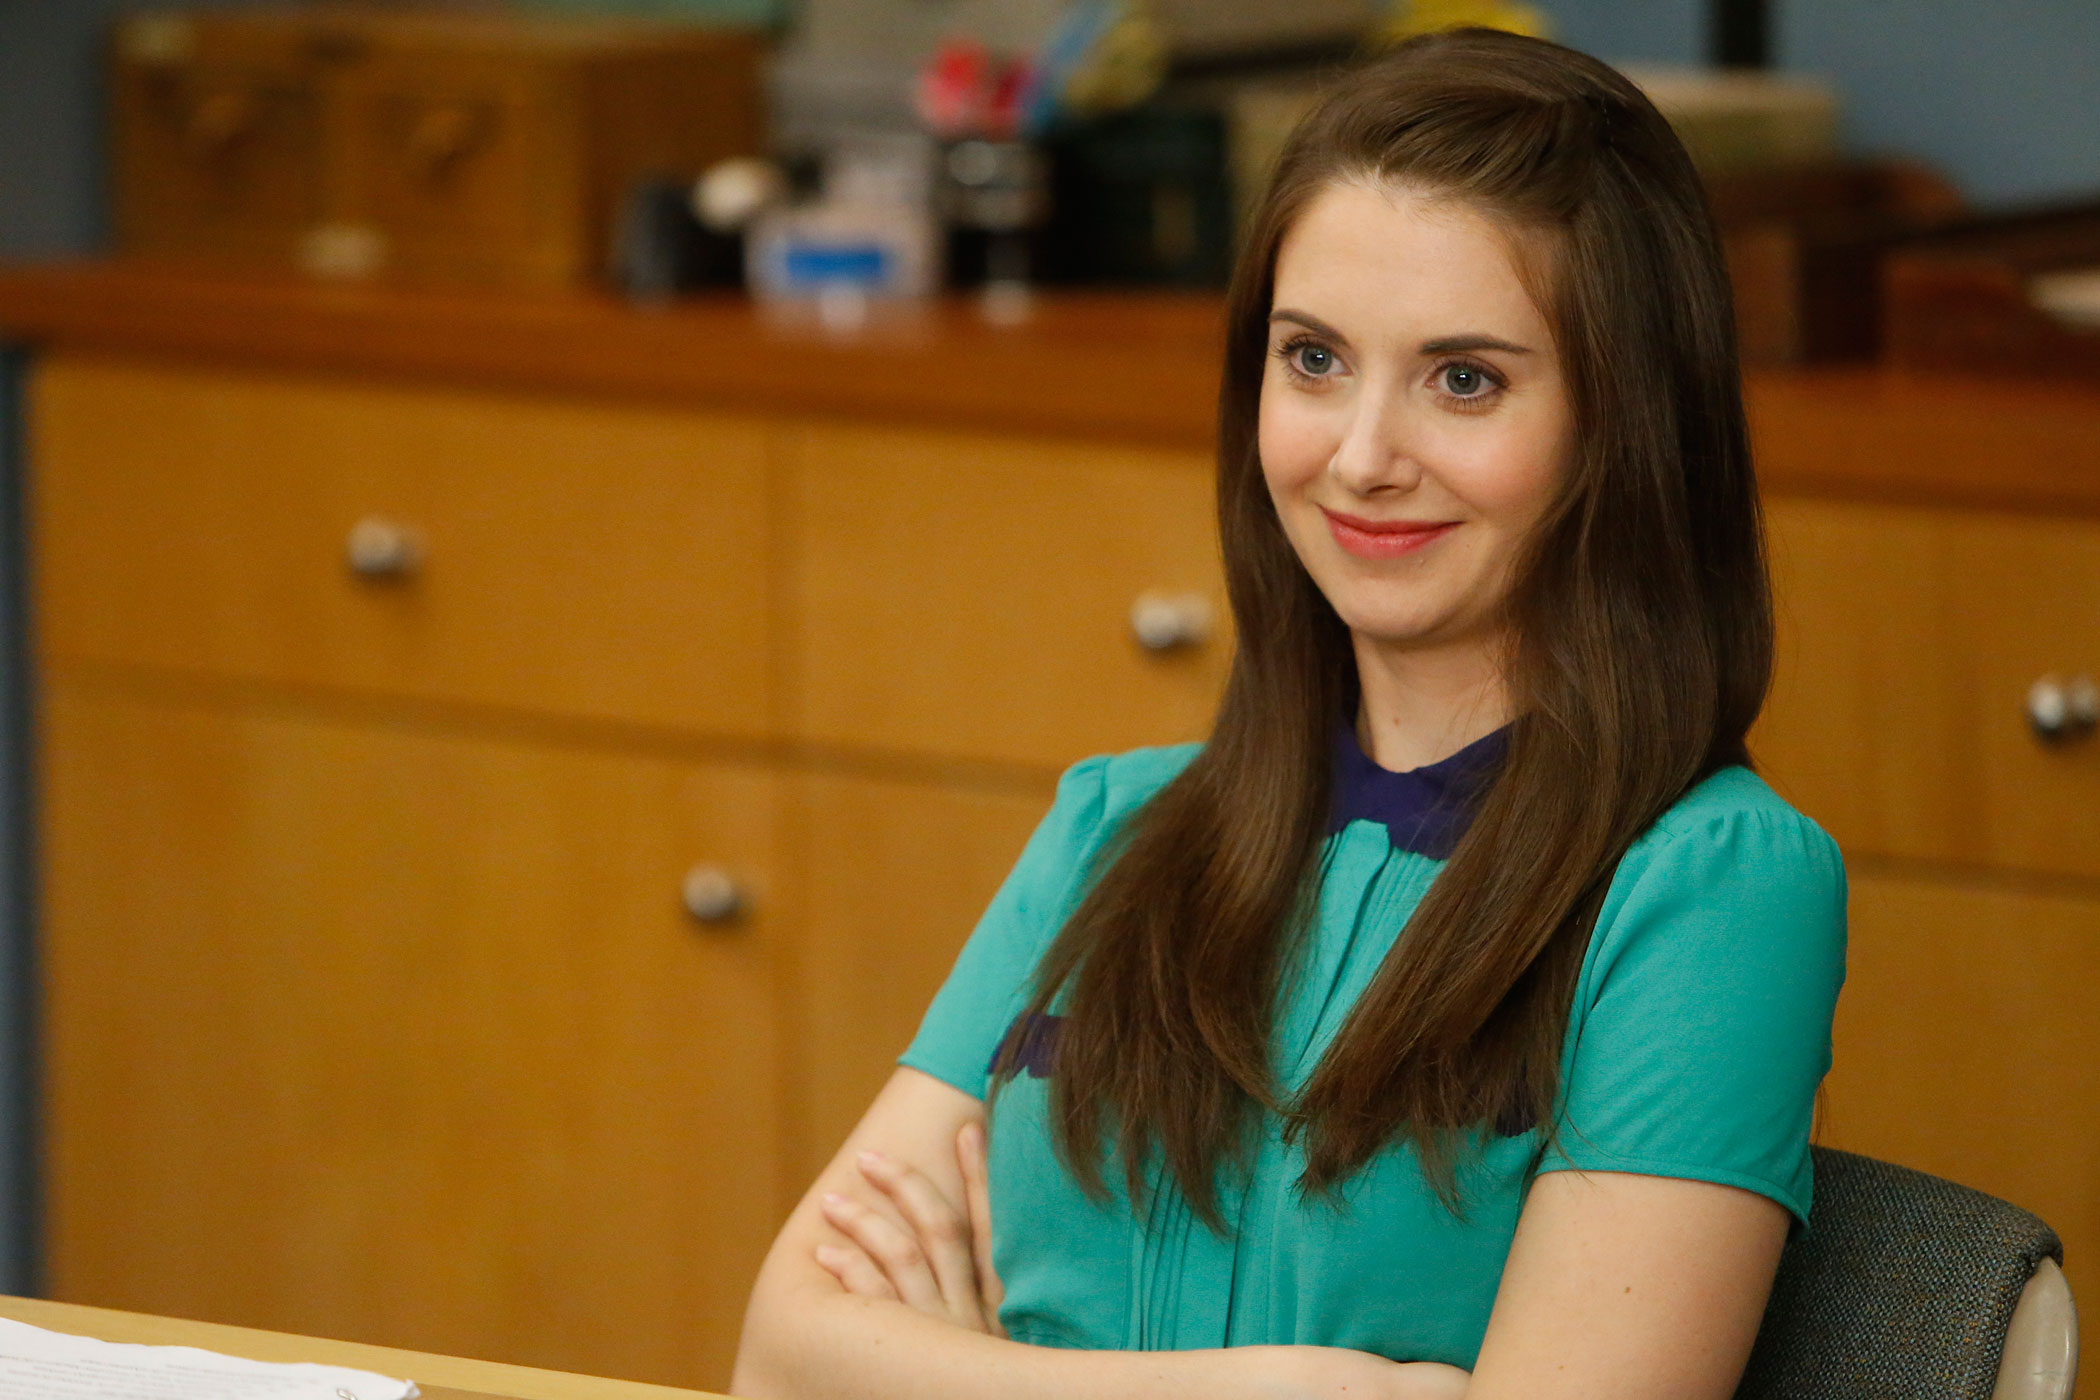 Alison Brie as Annie in Community